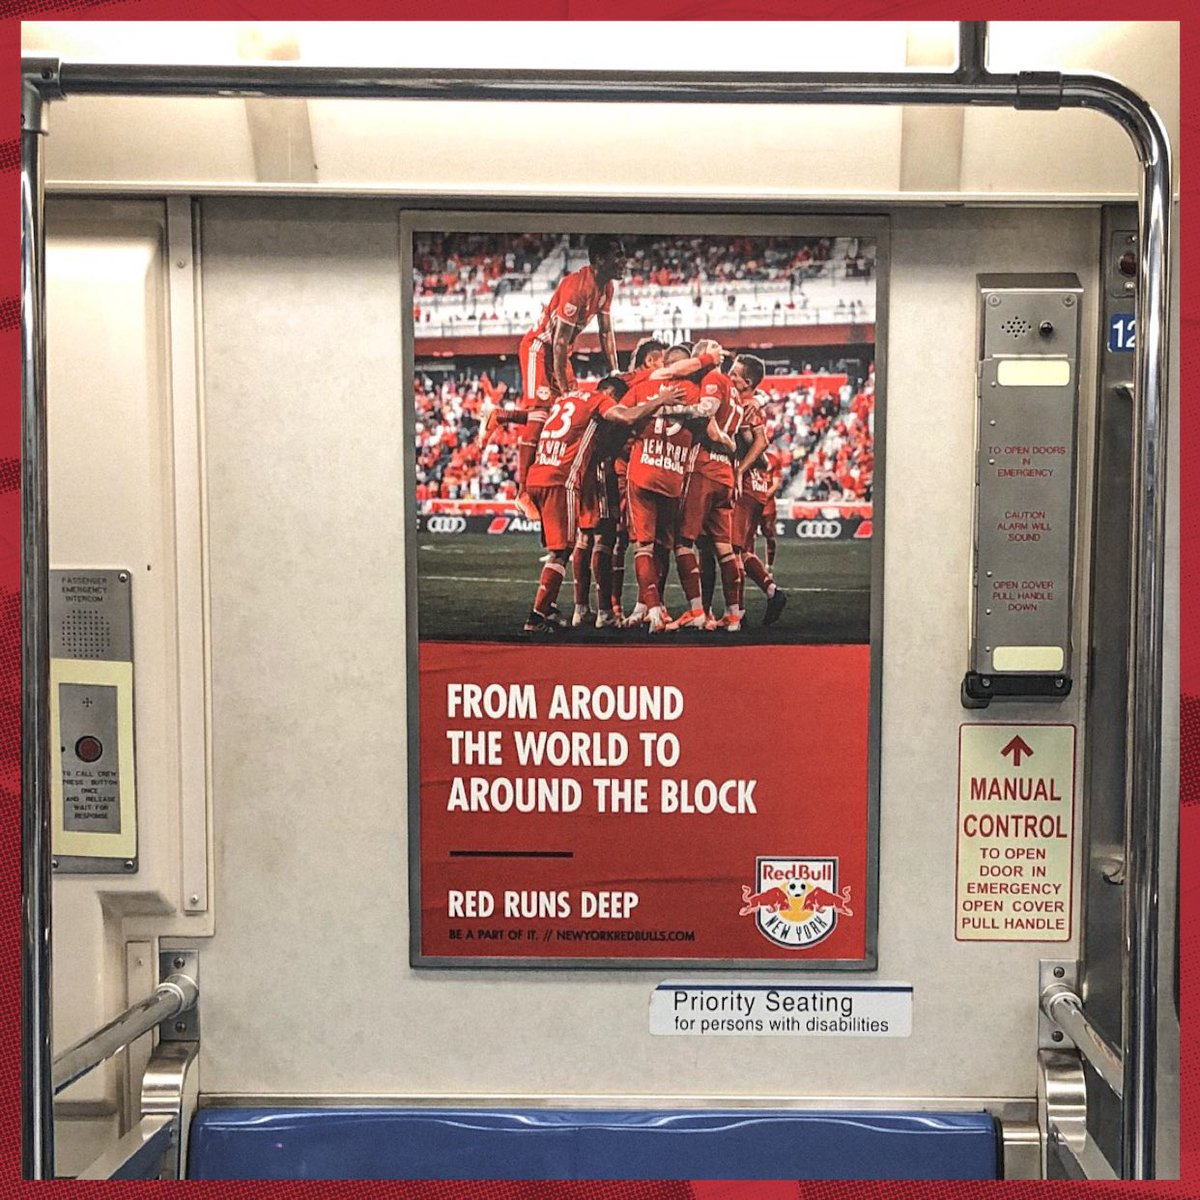 New York Red Bulls @NewYorkRedBulls